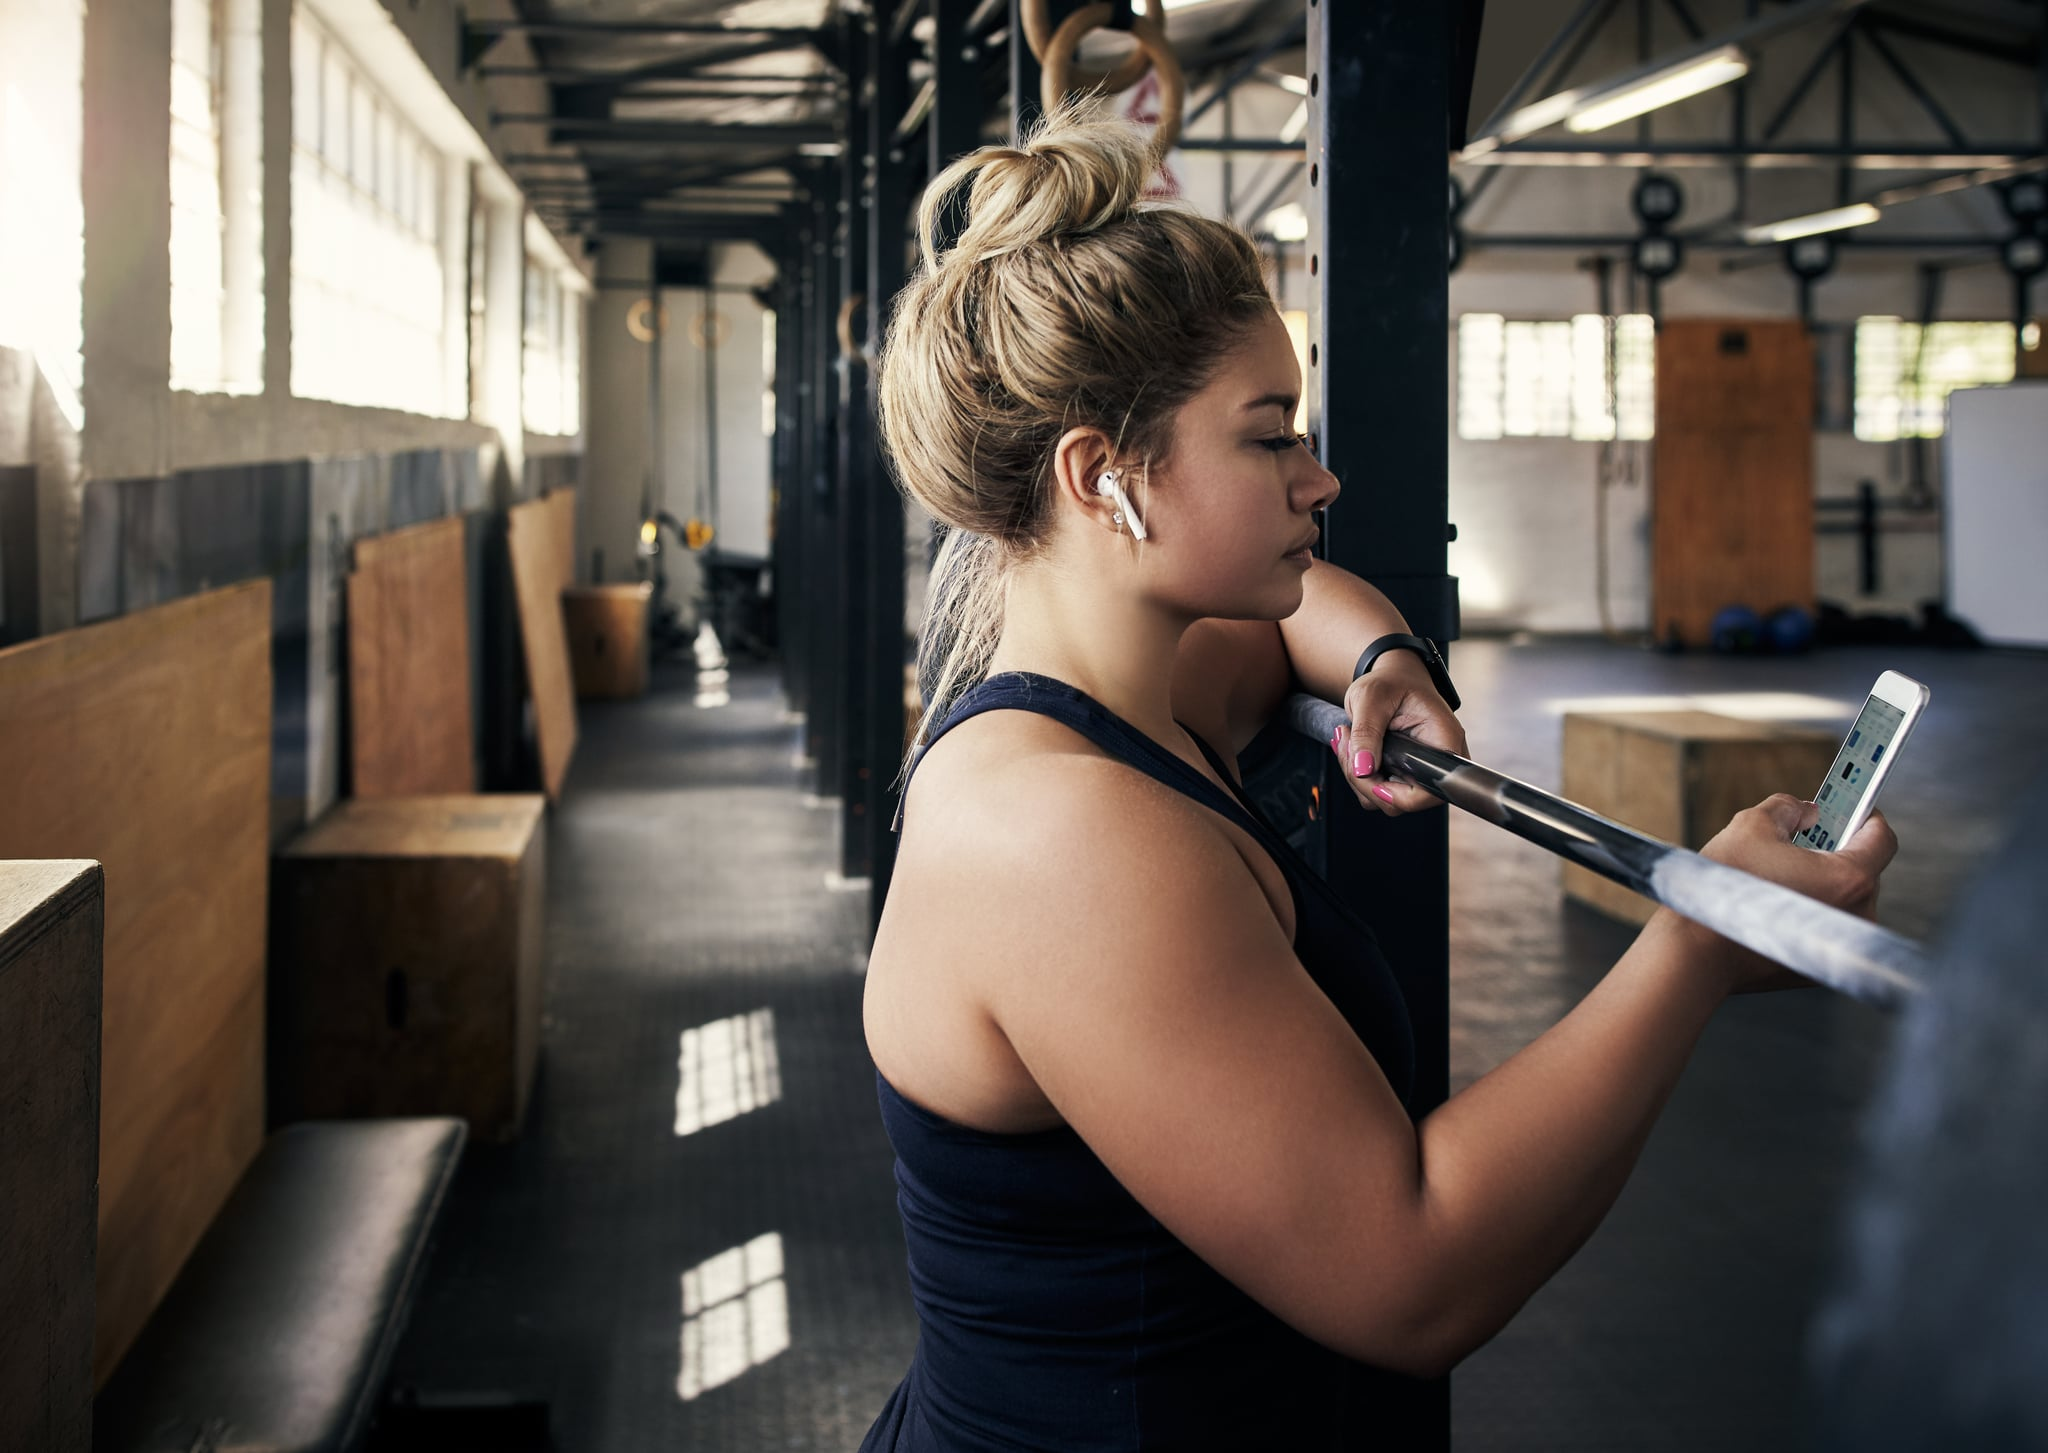 According to a Trainer, This Is How Often You Should Work Out to Maintain Your Weight